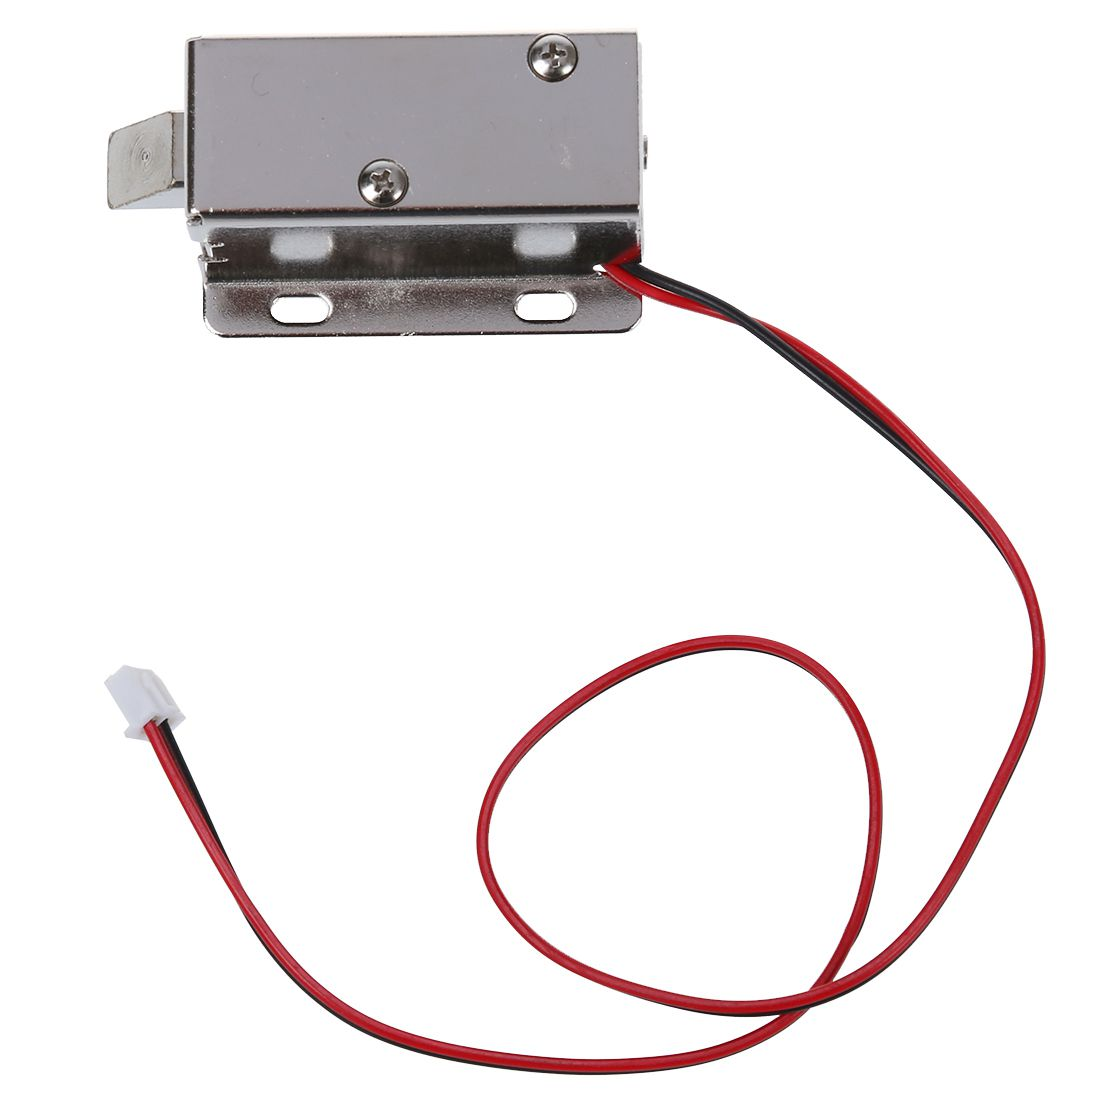 0837L DC 12V 8W Open Frame Type Solenoid for Electric Door Lock dc 12v open frame type electronic door lock 12v 2a for cabinet locks solenoid locks drawer